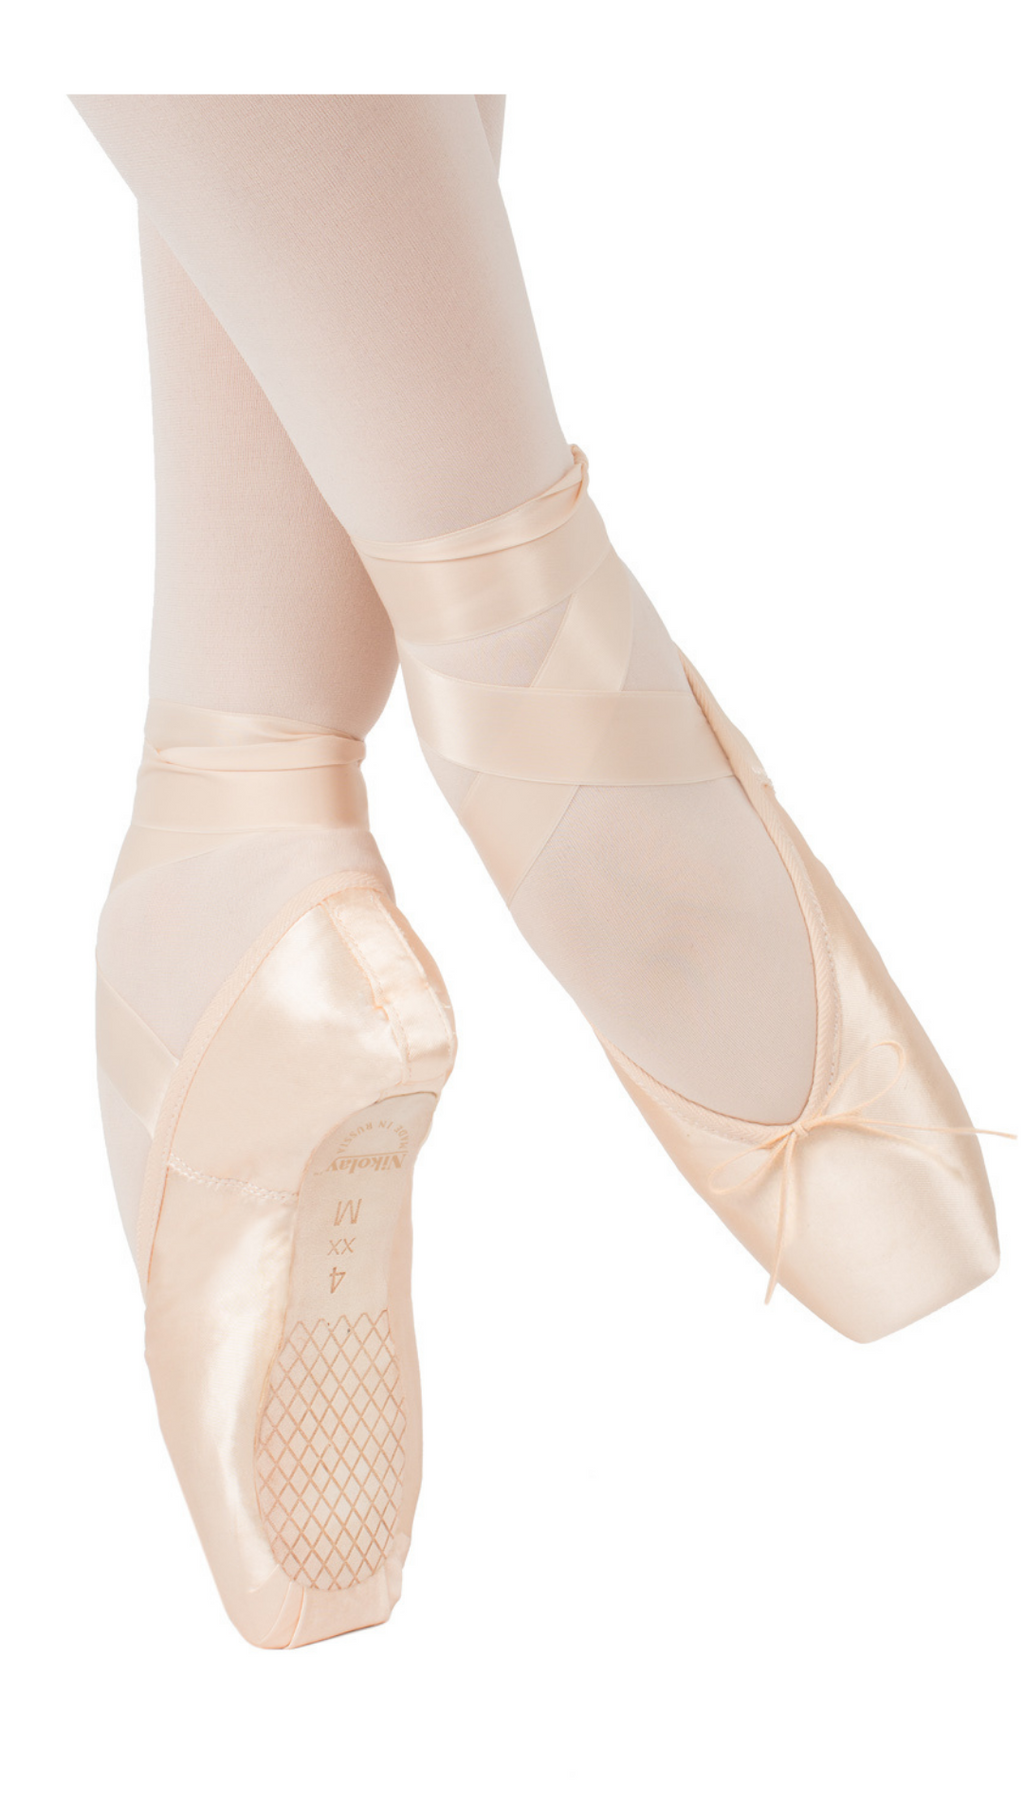 Fouette Pointe Shoe - Medium Shank